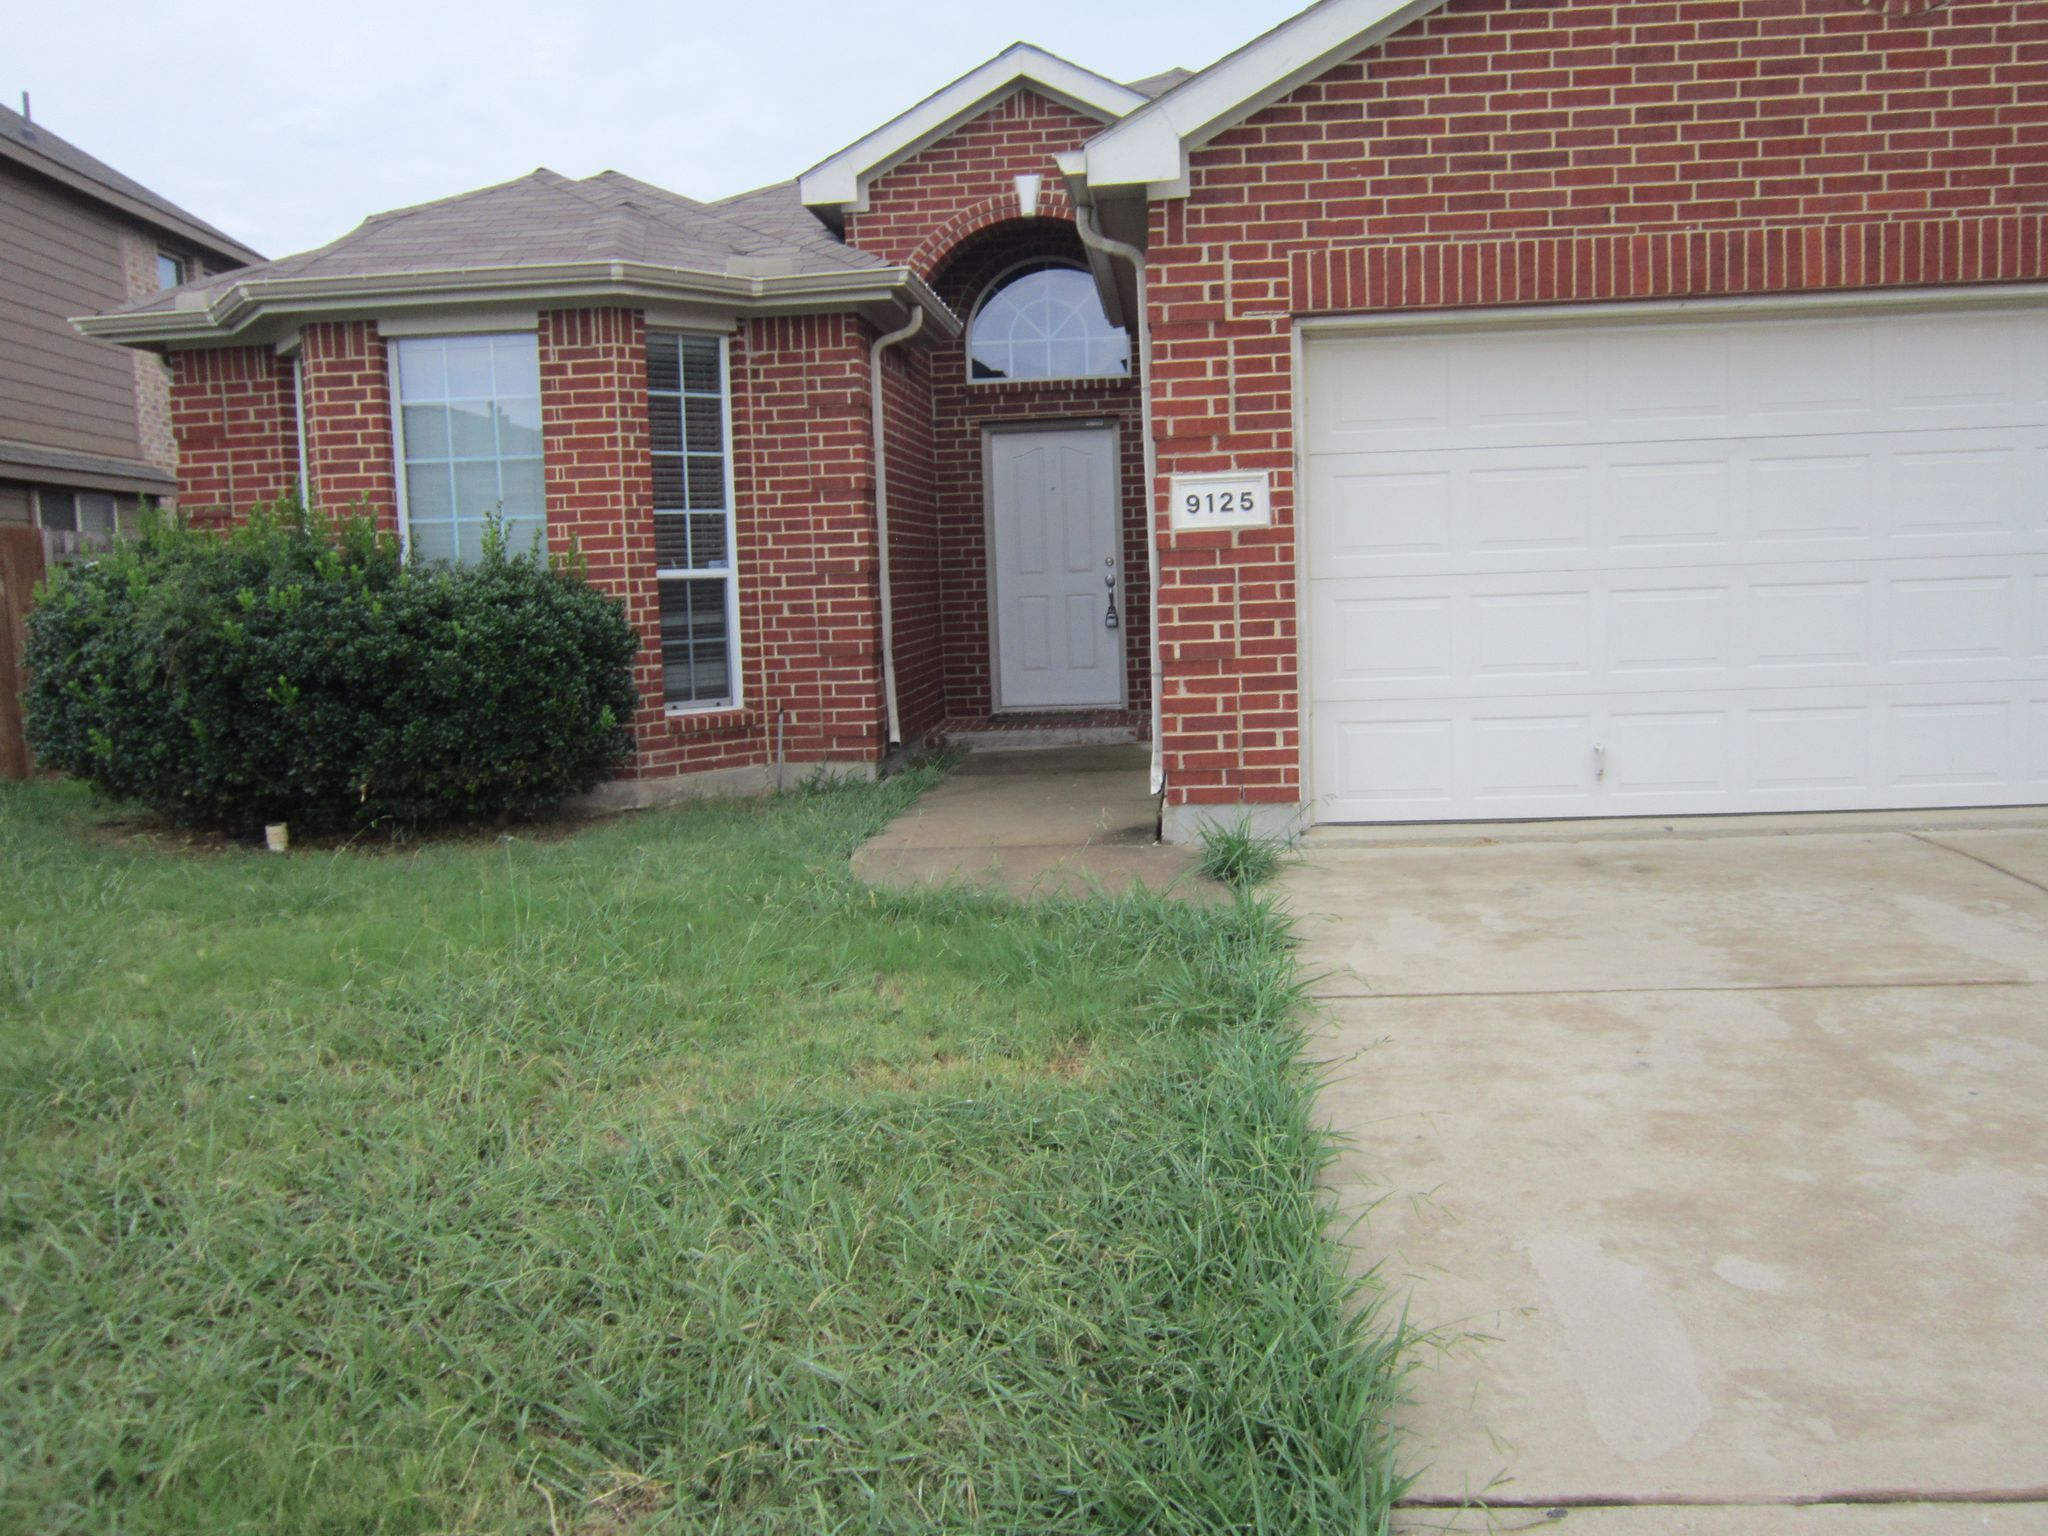 9125 vineyard ln fort worth tx 76123 estimate and home details